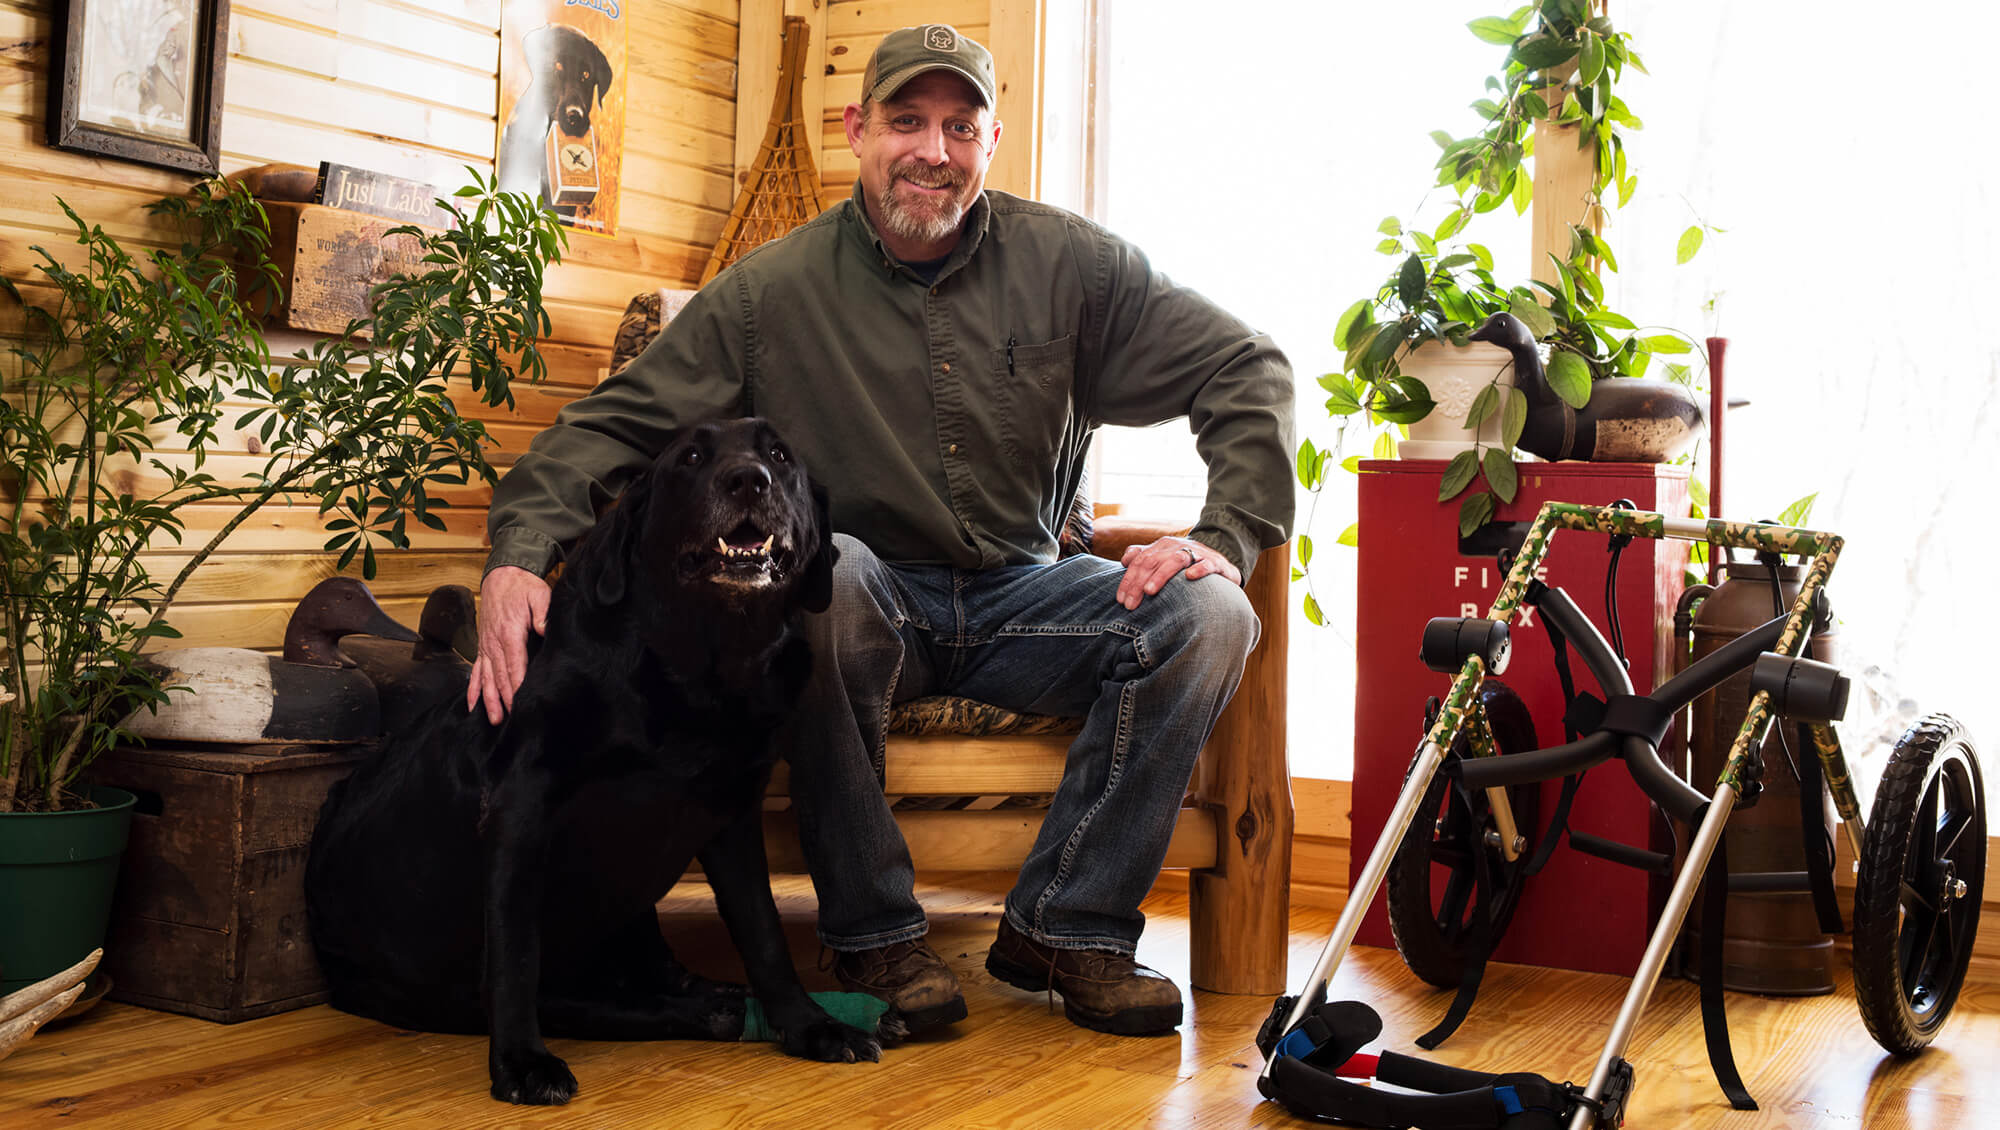 man with his dog smiling for the camera in their home